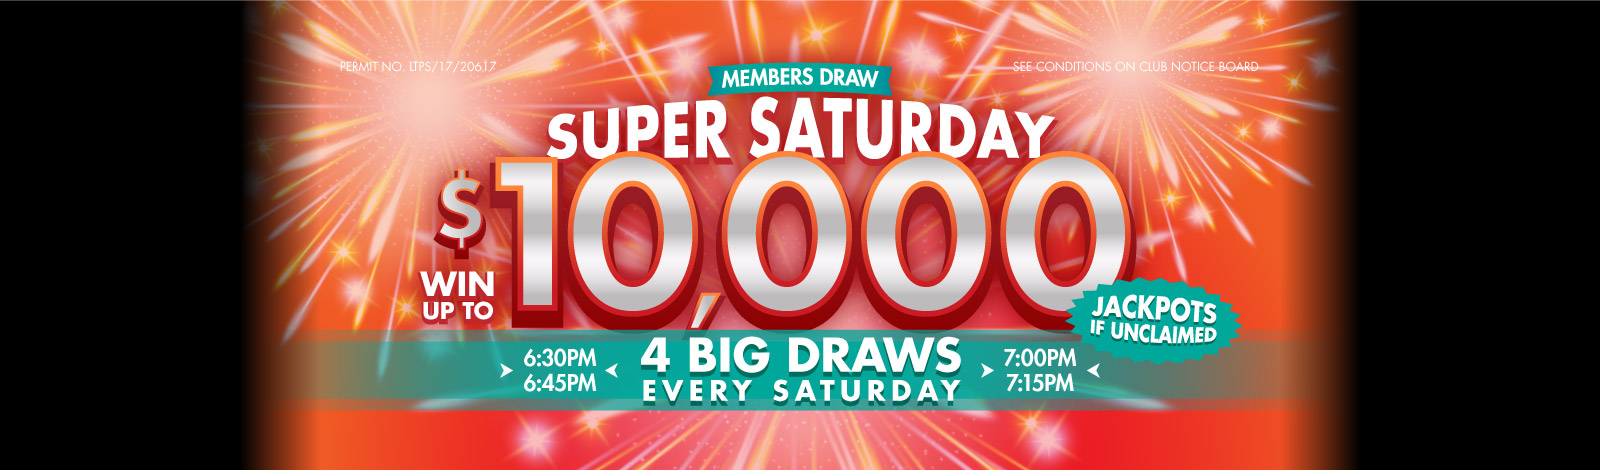 Super Saturday $10000 Jackpot Slider